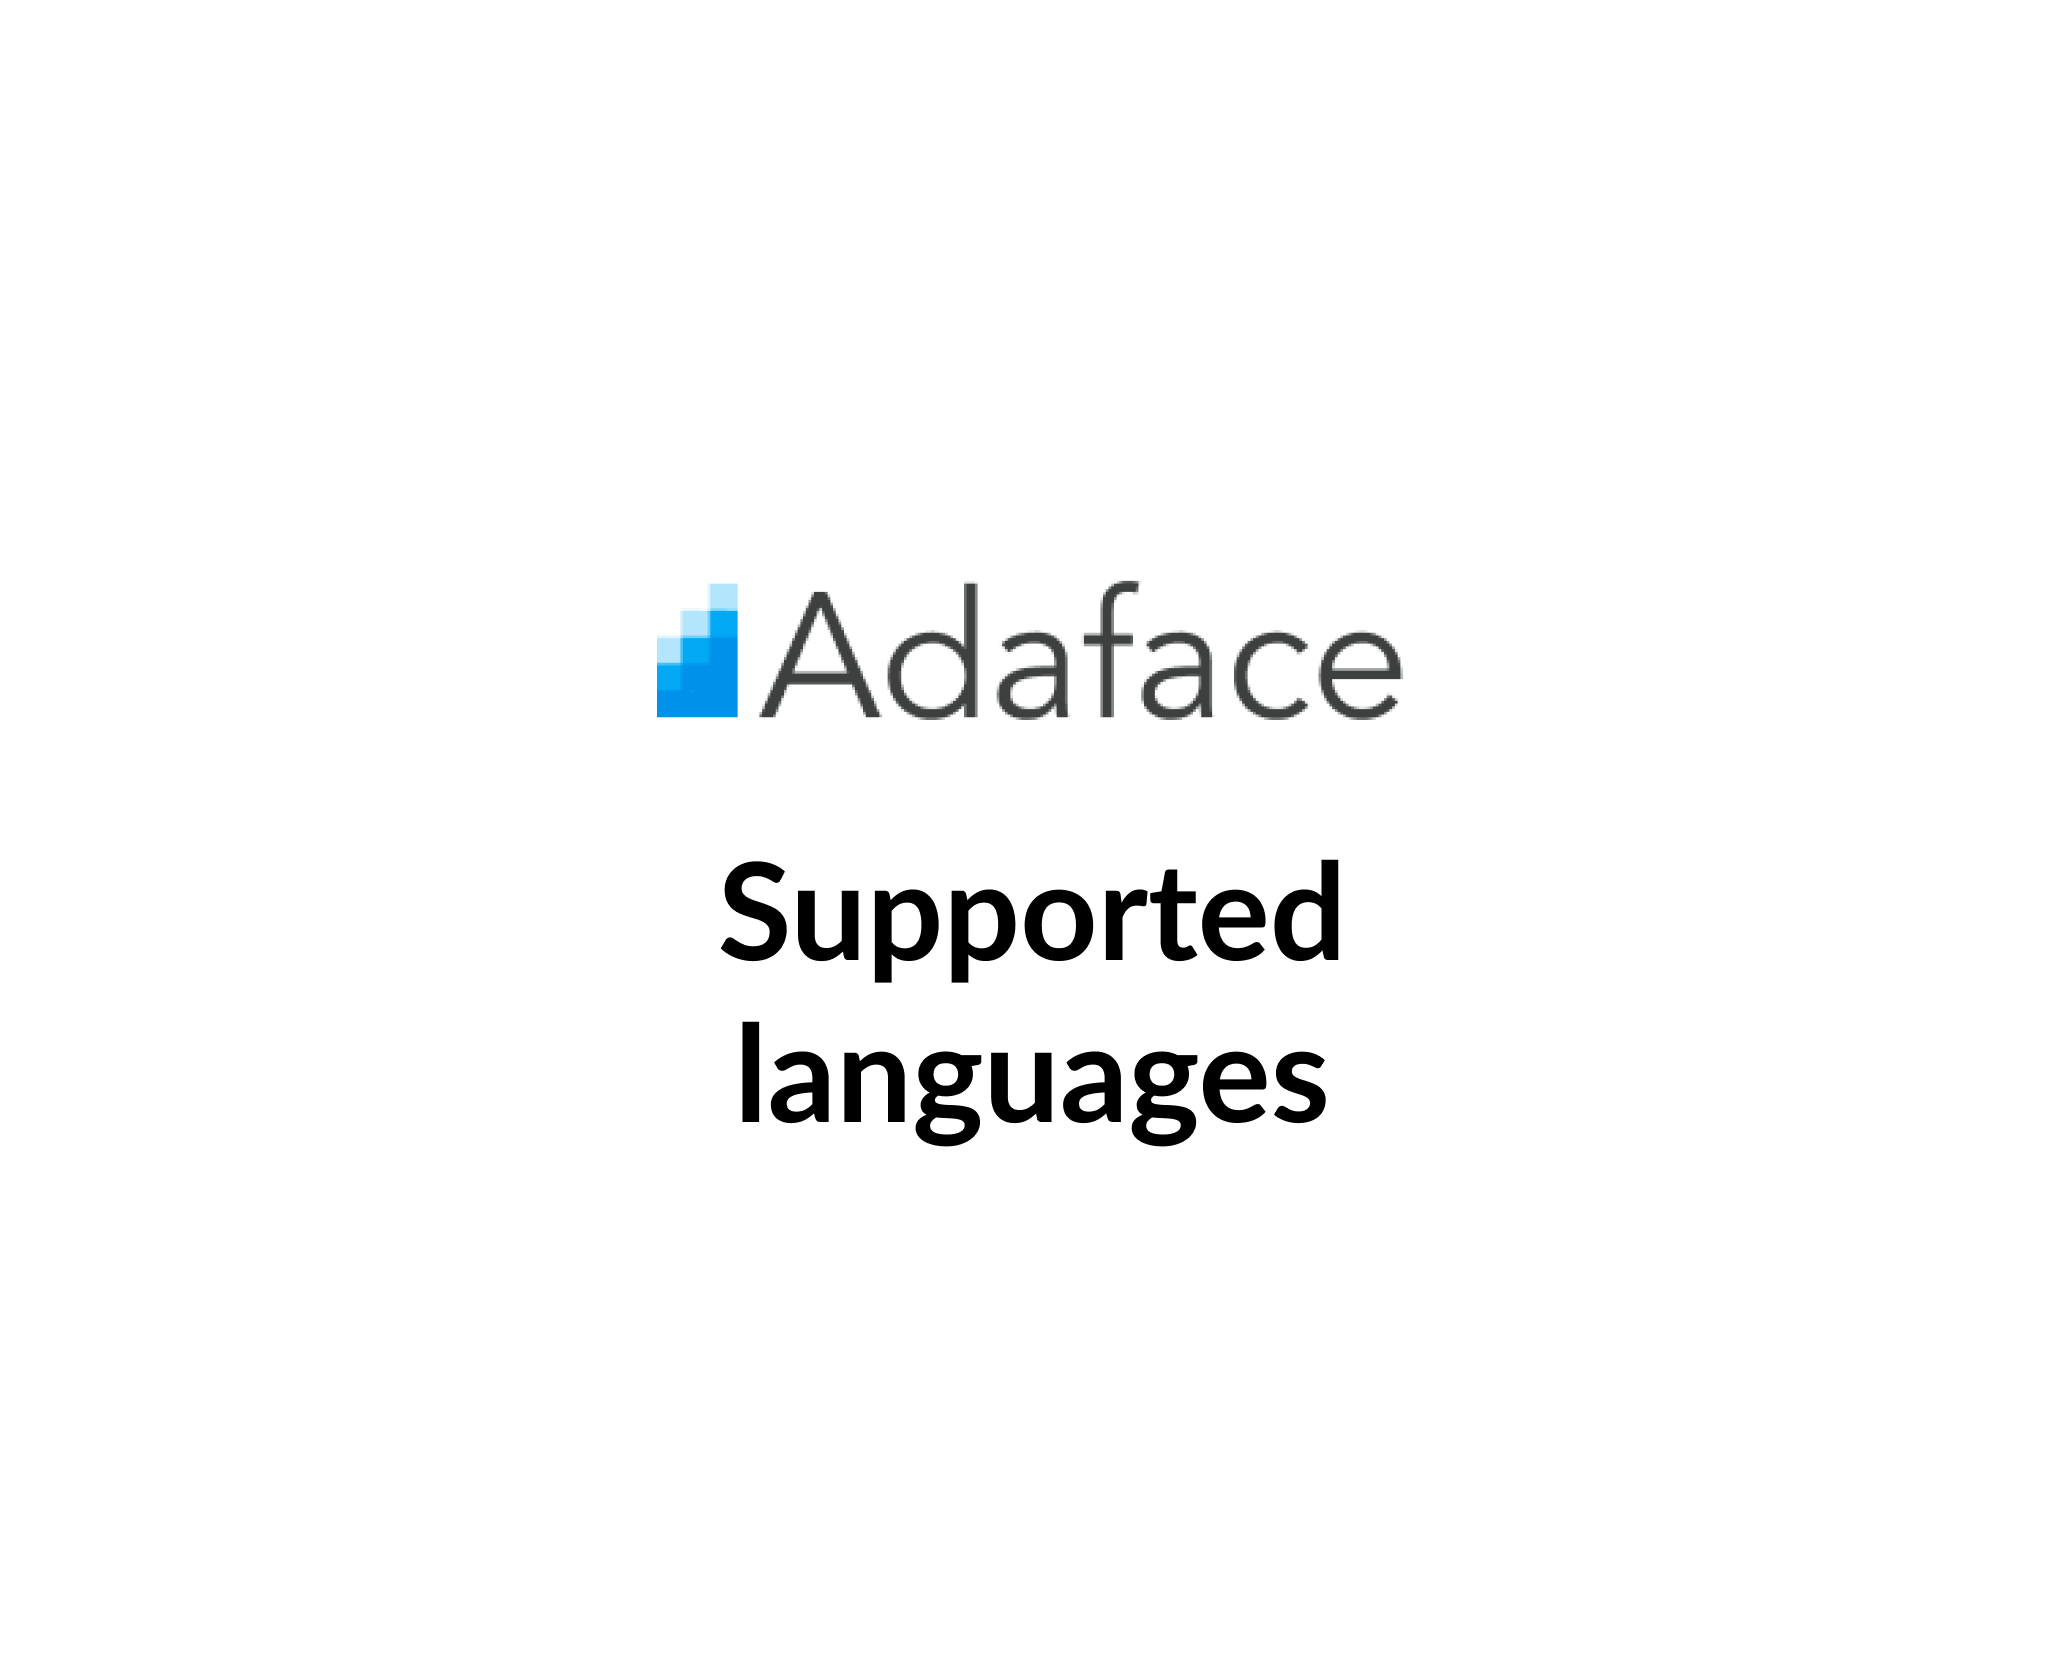 60+ programming languages to support your technical requirements